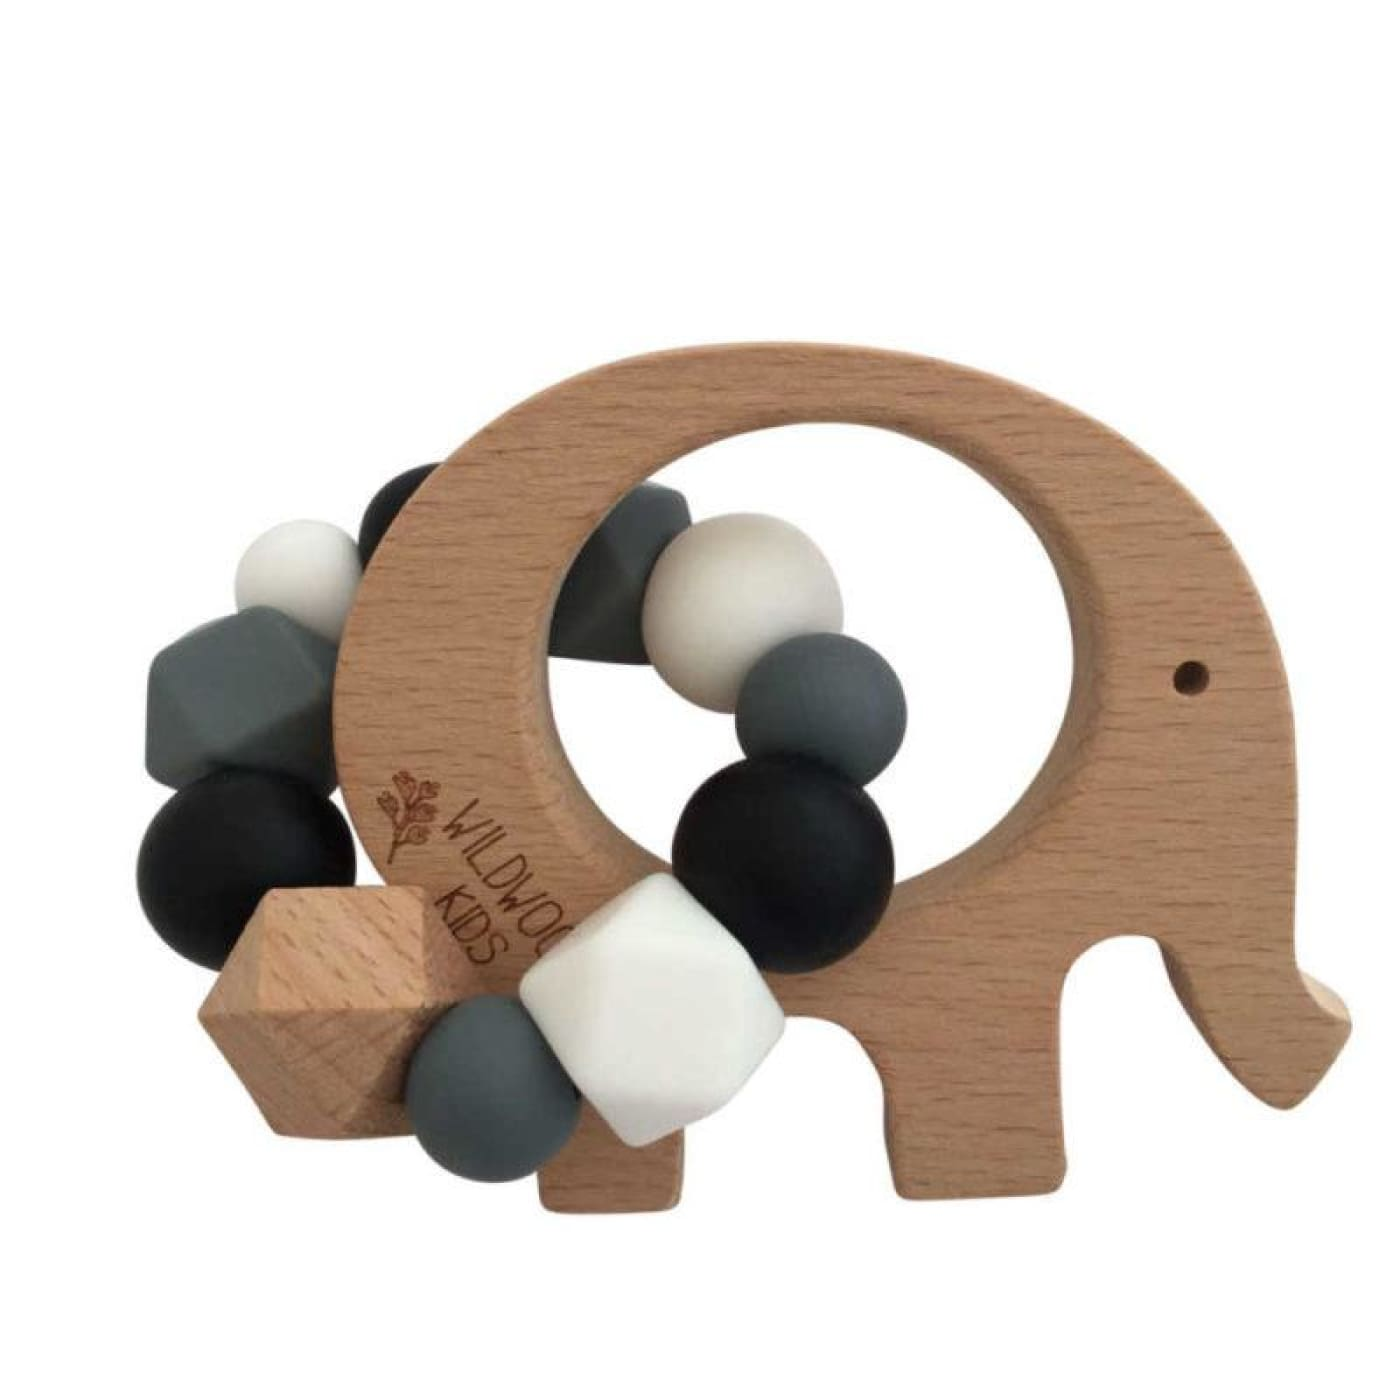 Wildwood Kids Teether - Elephant Charcoal Mix - NURSING & FEEDING - TEETHERS/TEETHING JEWELLERY